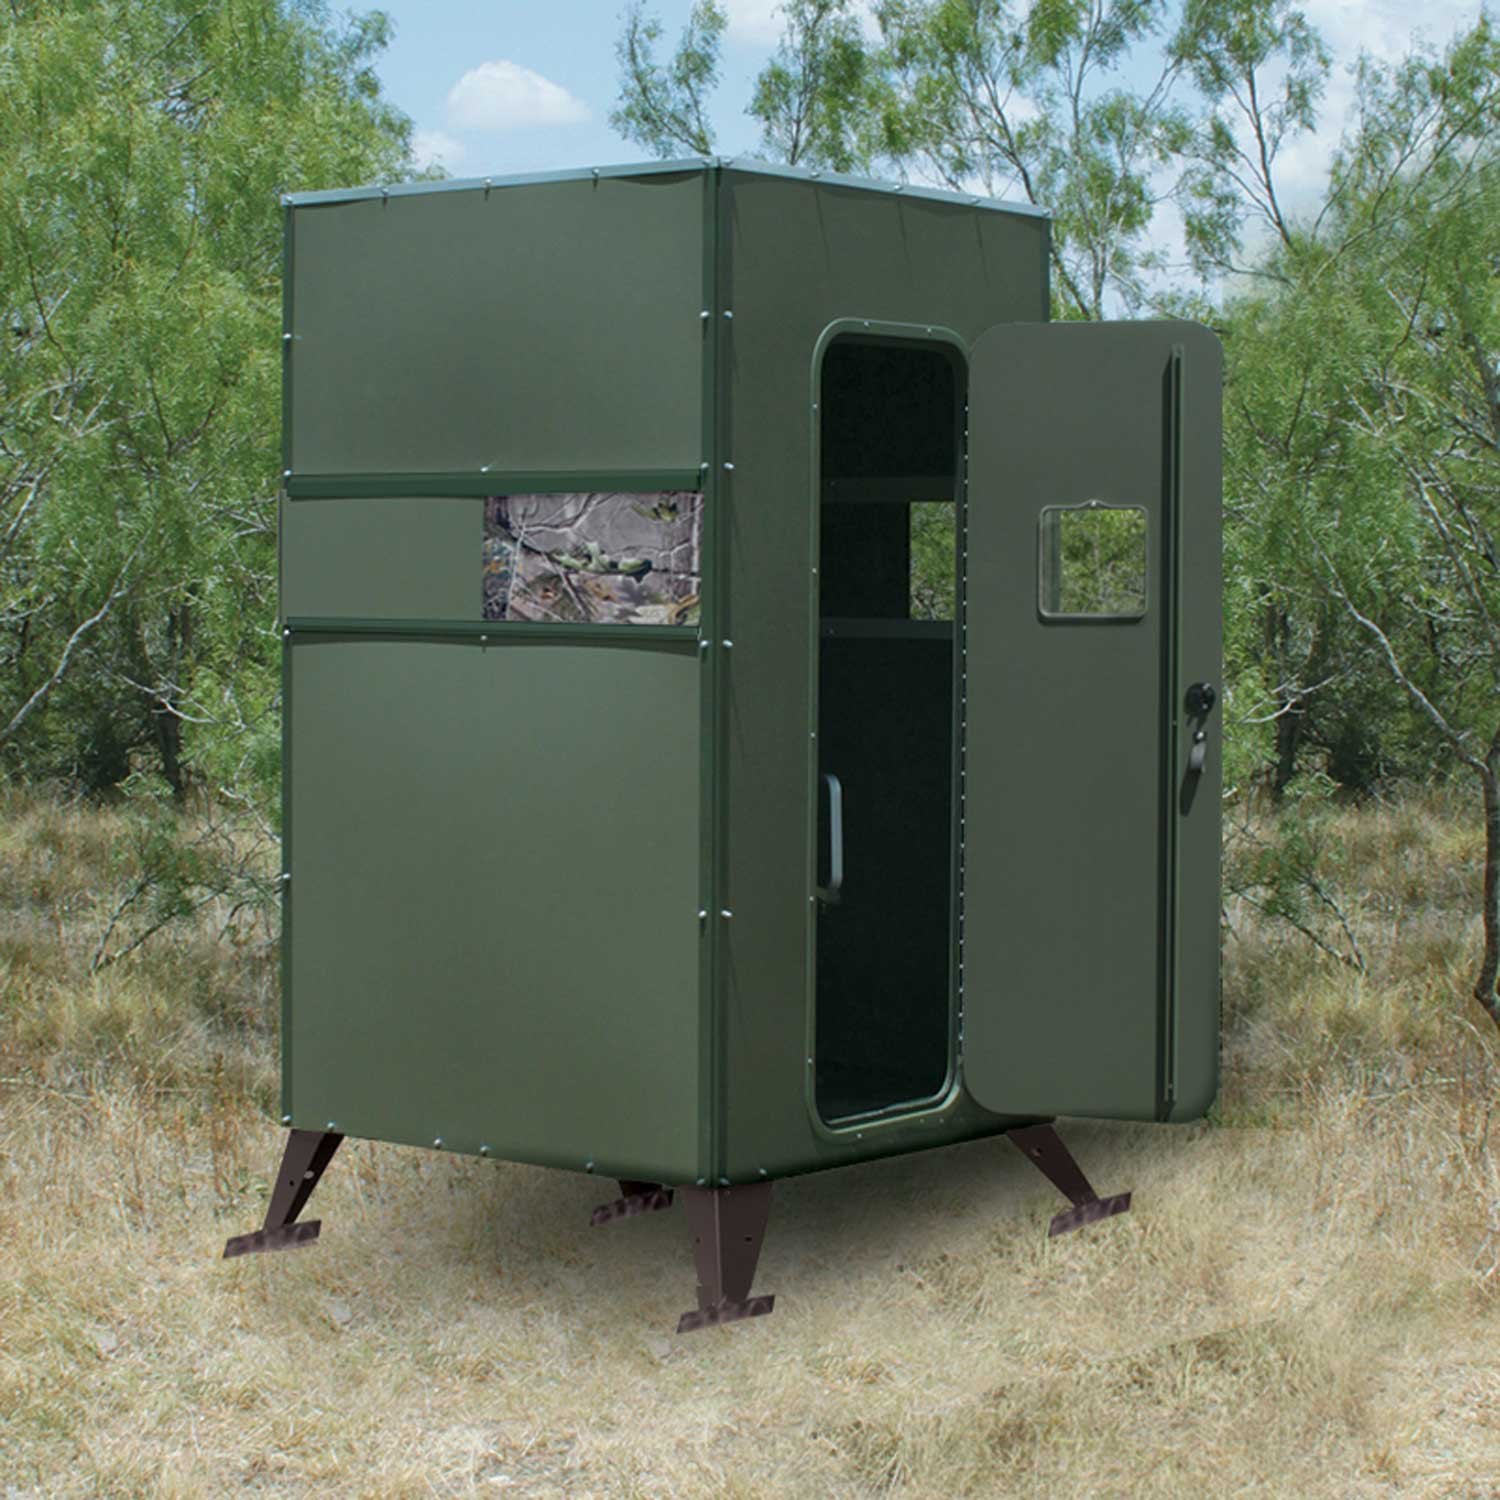 Fdbg Xtreme Ground Deer Blind Single 4 X 4 With Full